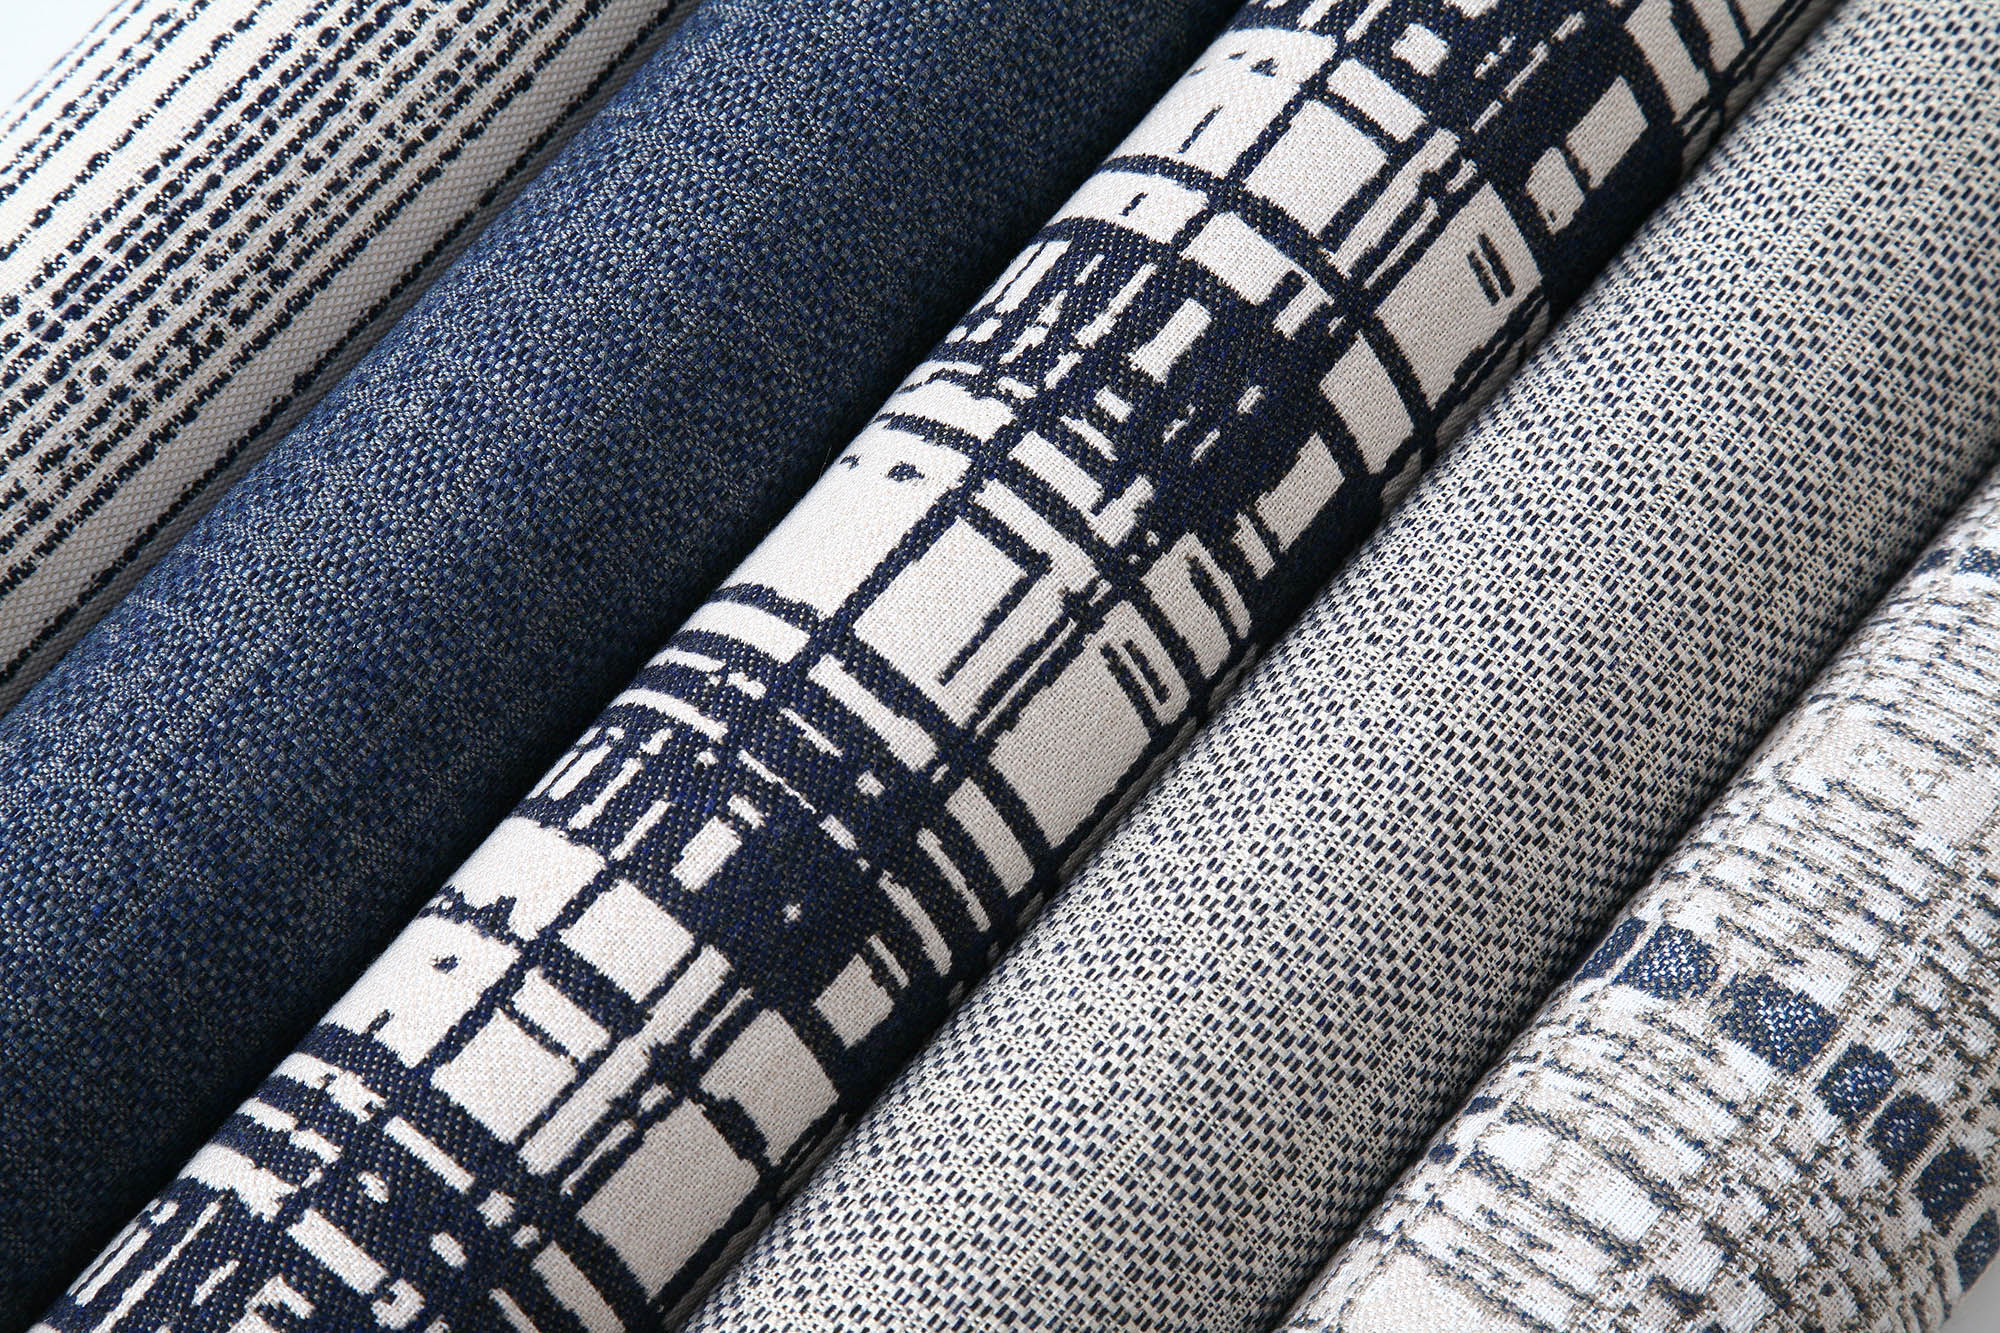 A selection of upholstery fabrics from the Richard Frinier Network Collection